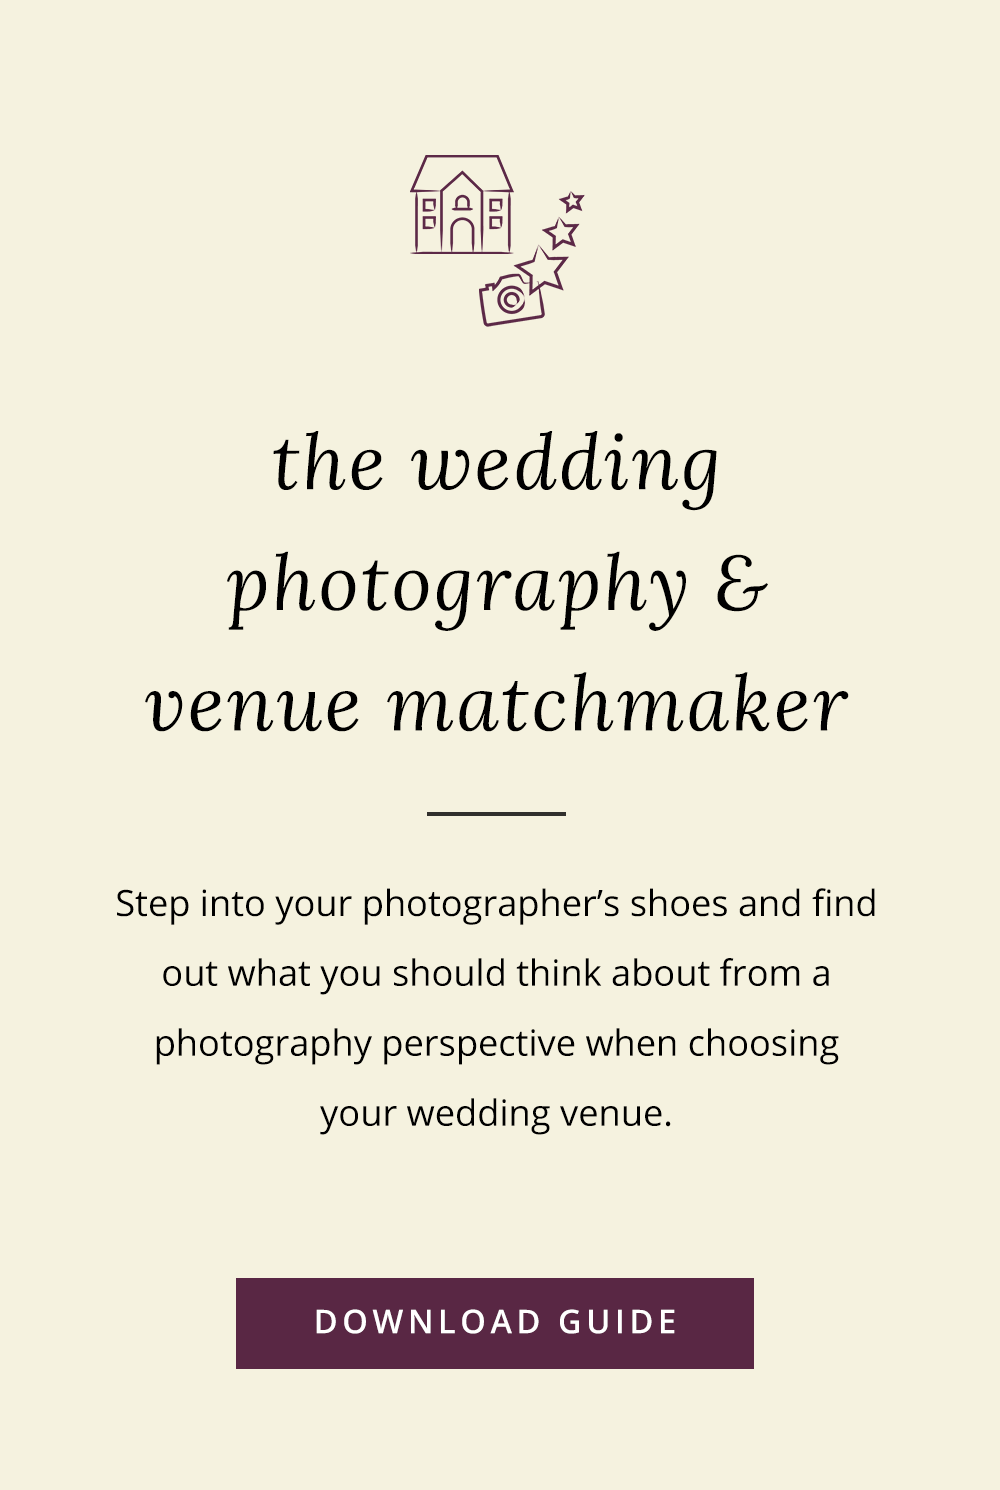 Photography things to consider when choosing your wedding venue